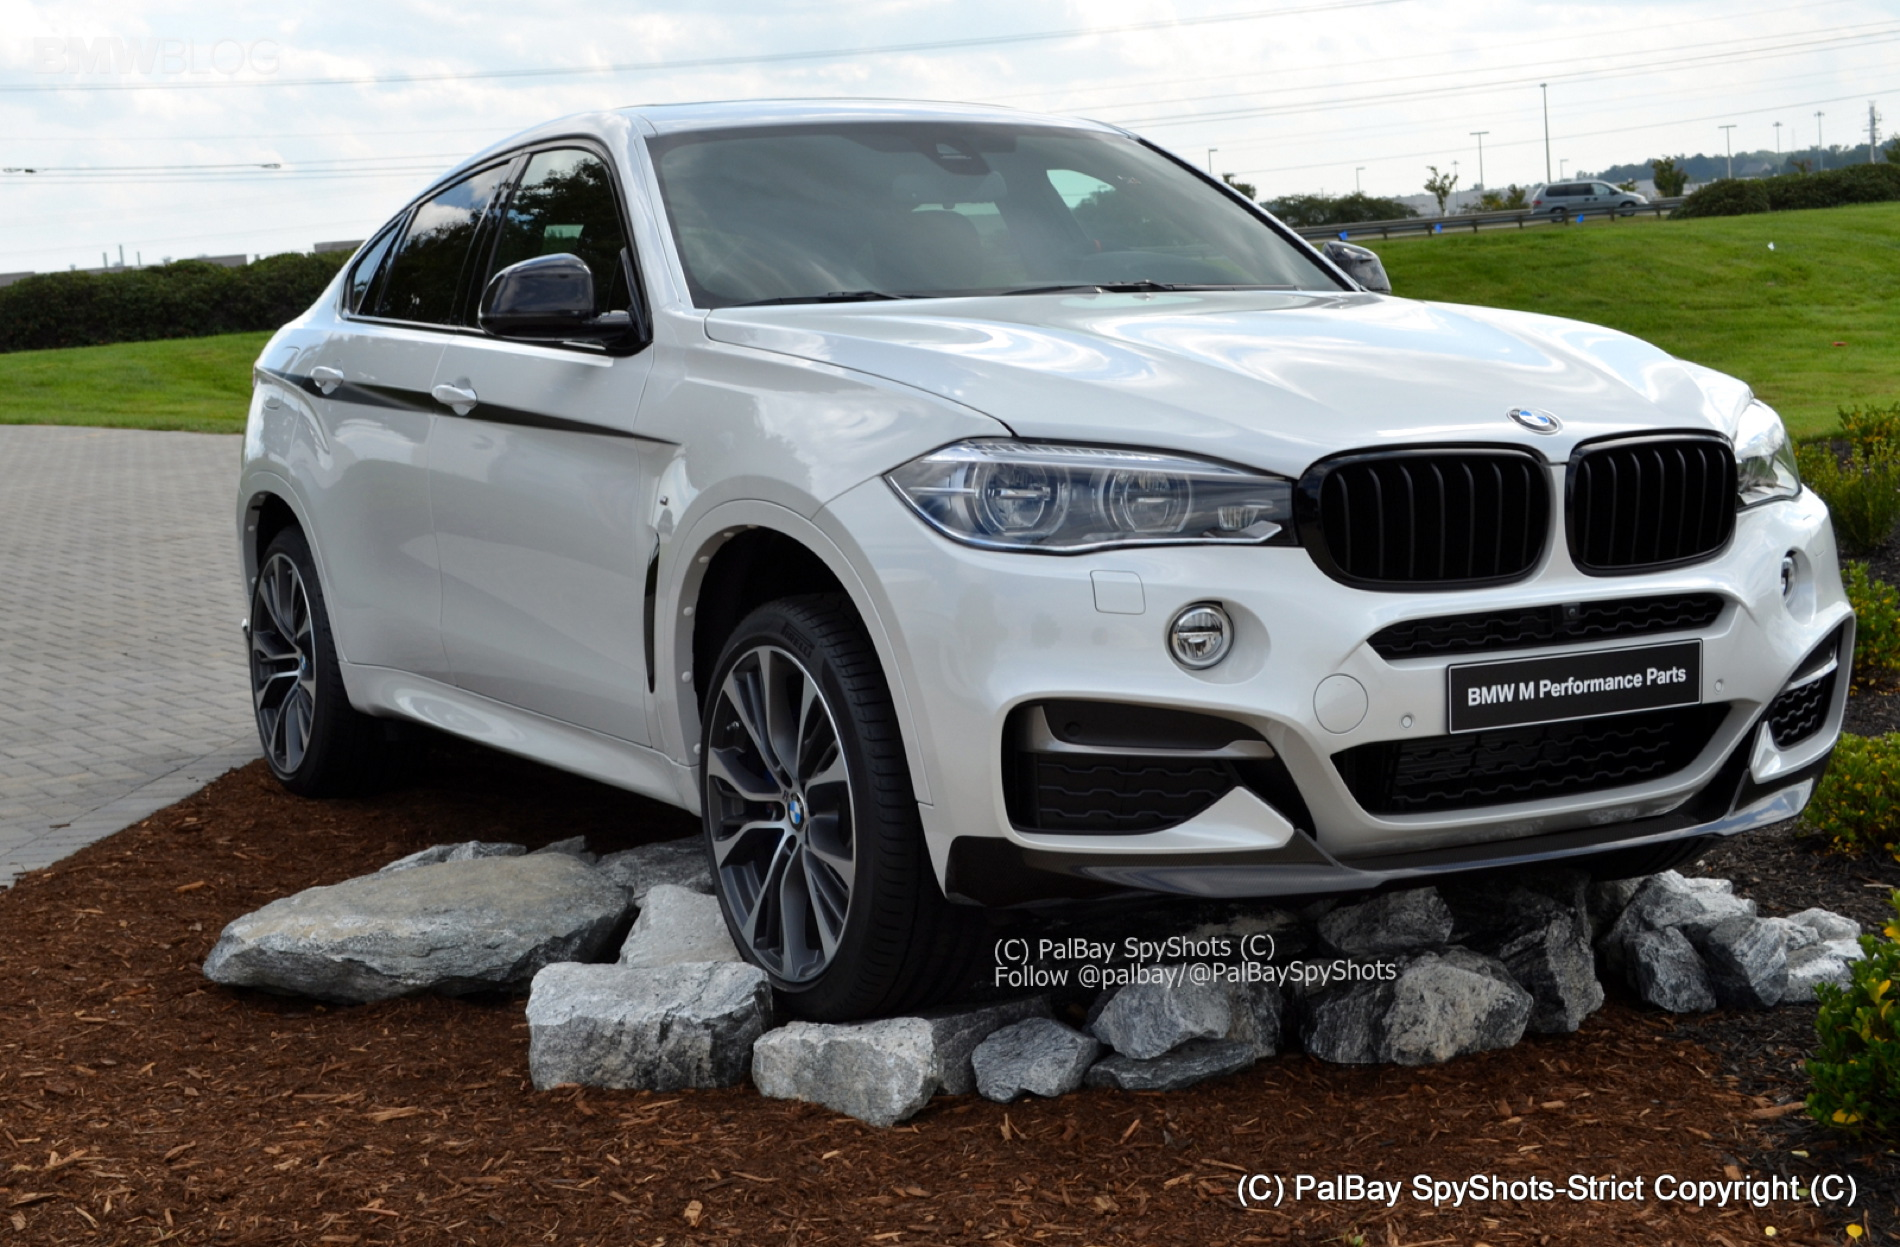 aa215faae90 2015 BMW X6 with M Performance Parts